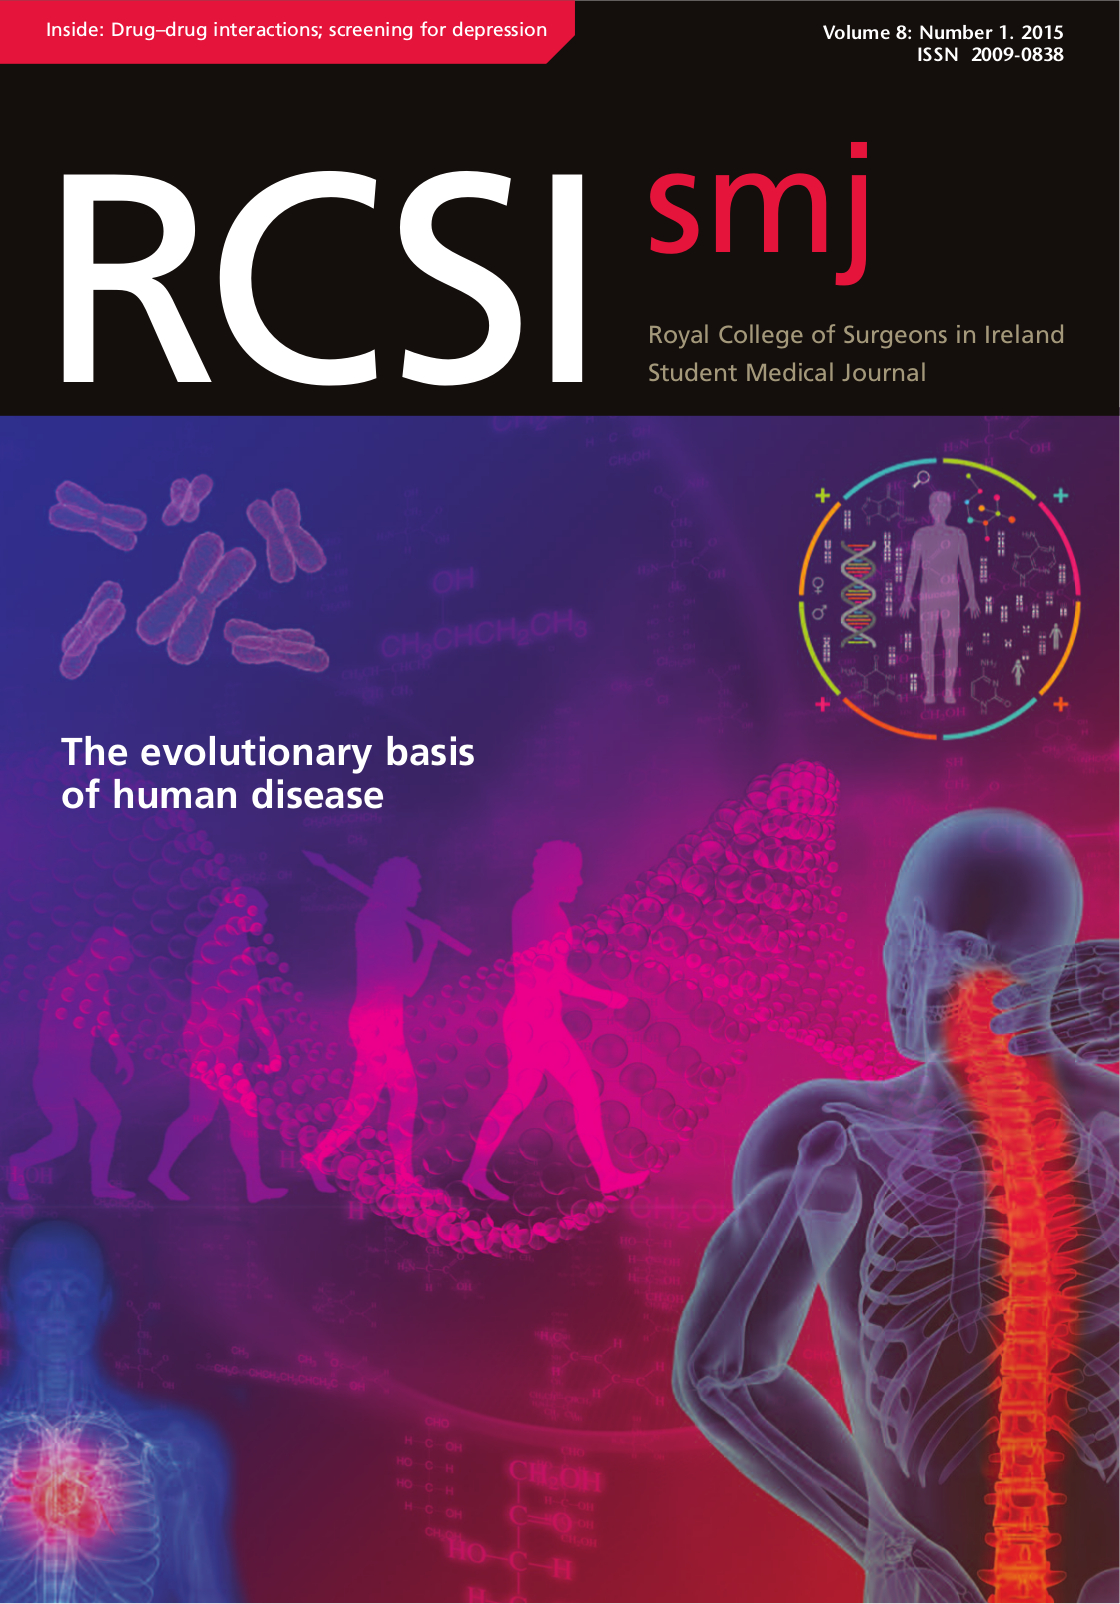 RCSISMJ-Volume-8-cover